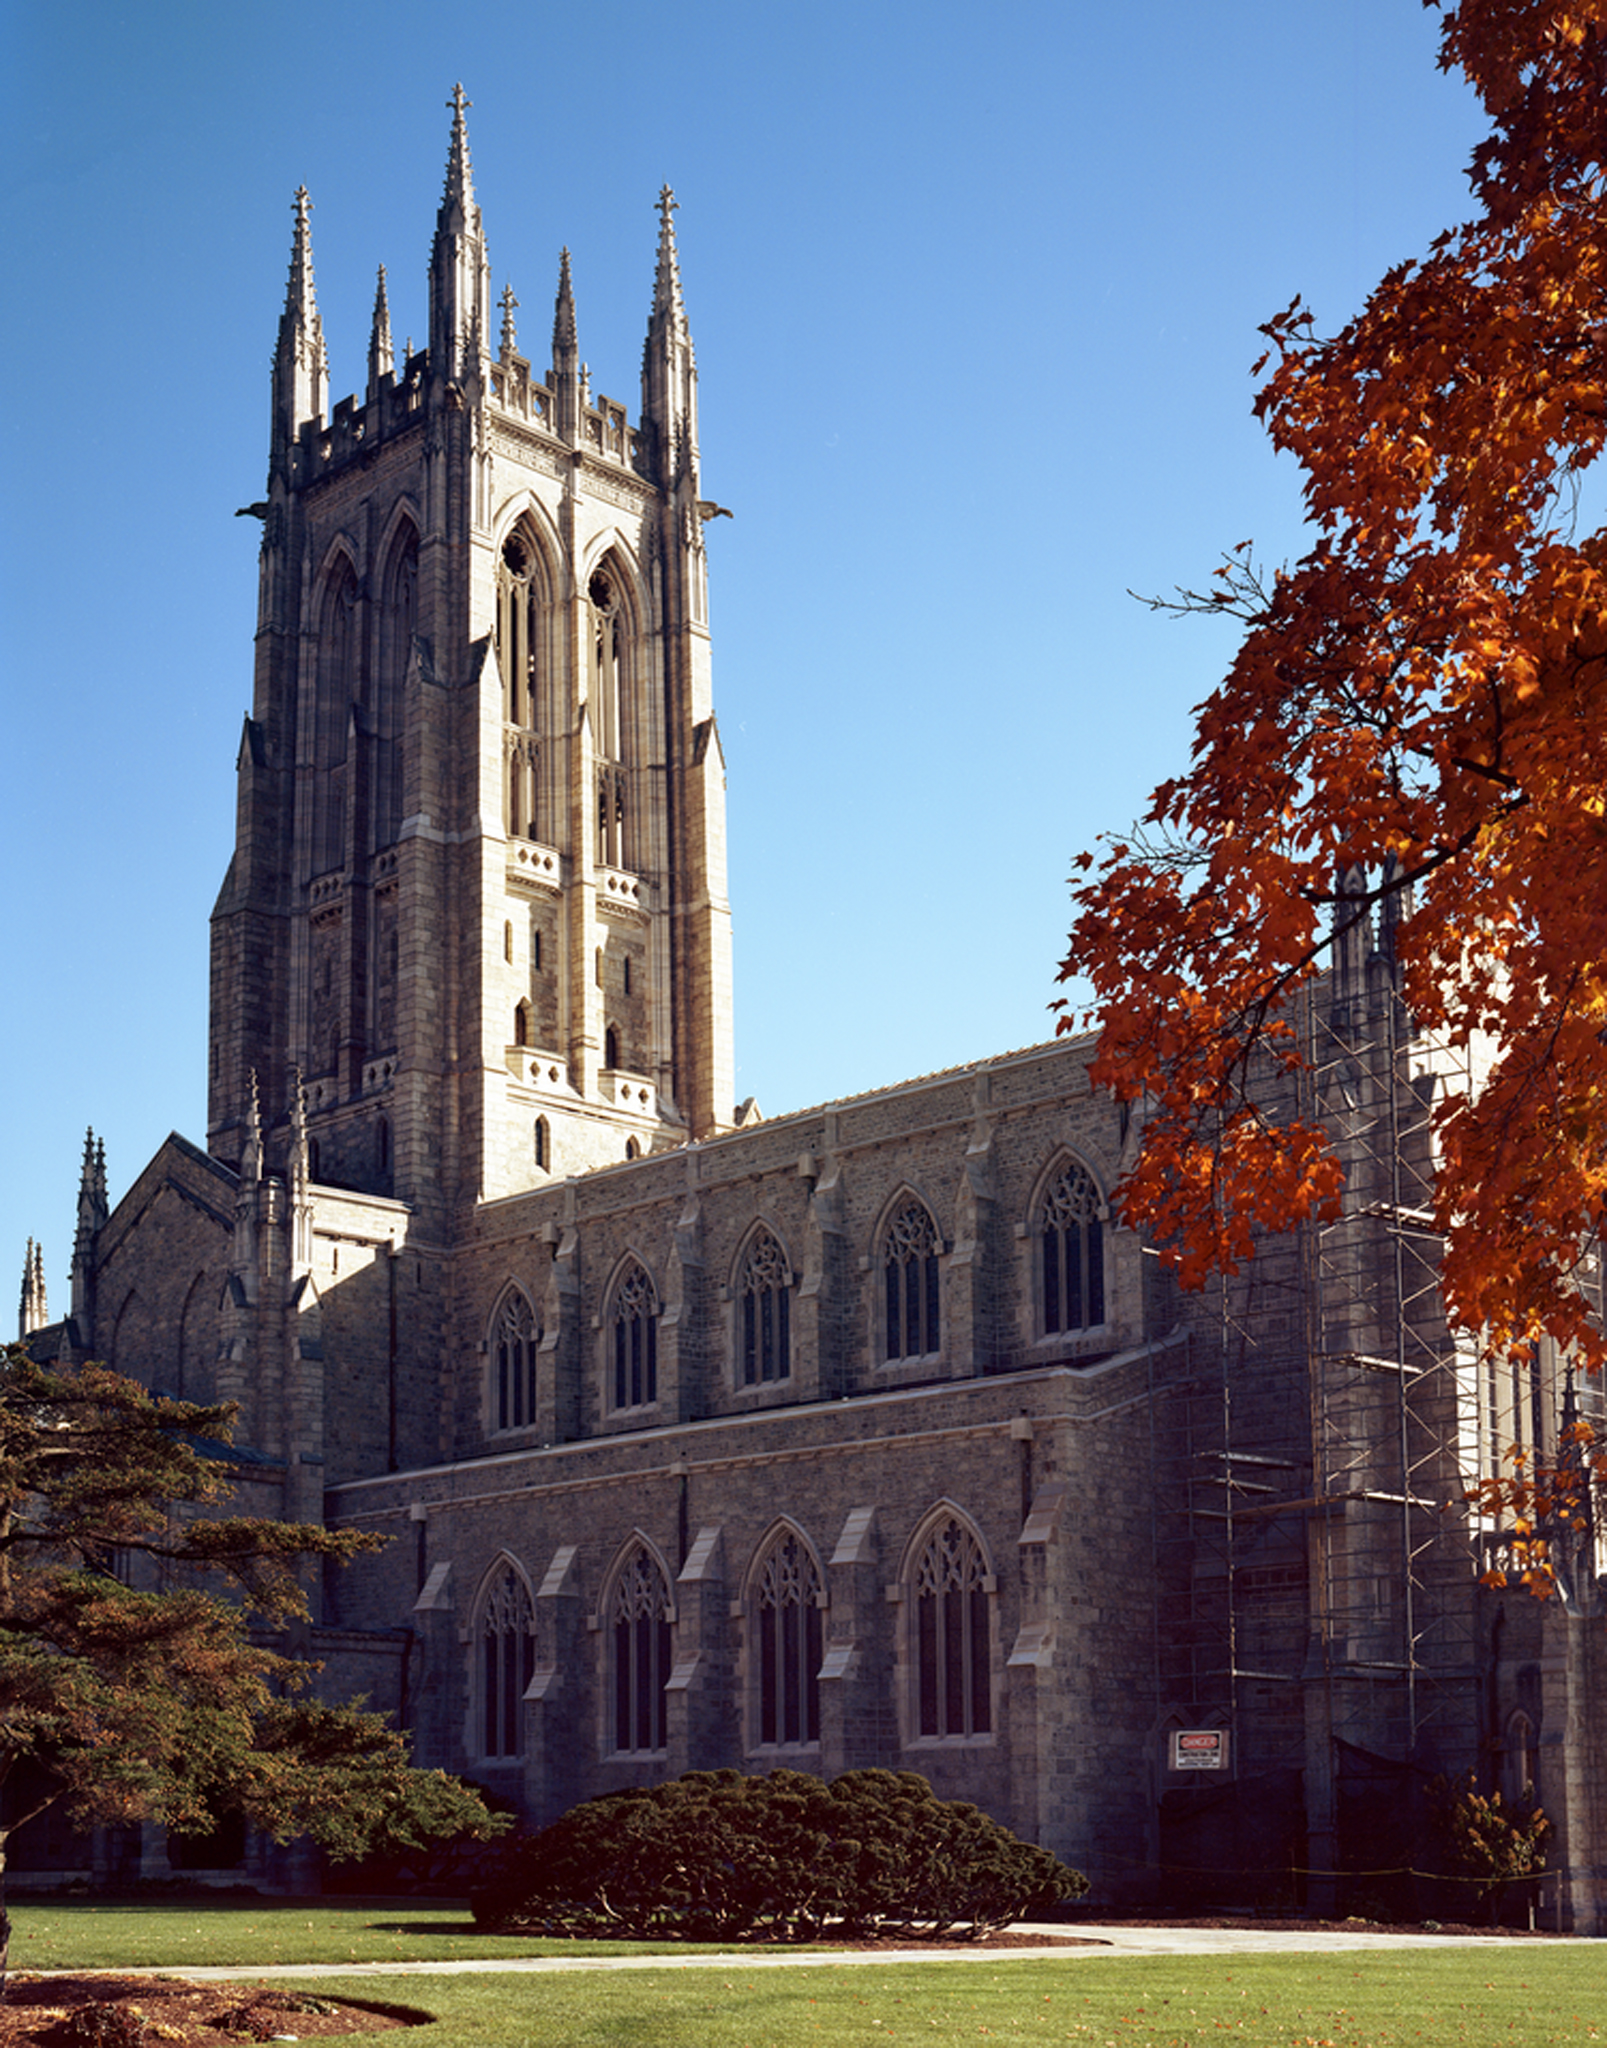 4x5_for_365_project_0317_Bryn_Athyn_Cathedral.jpg